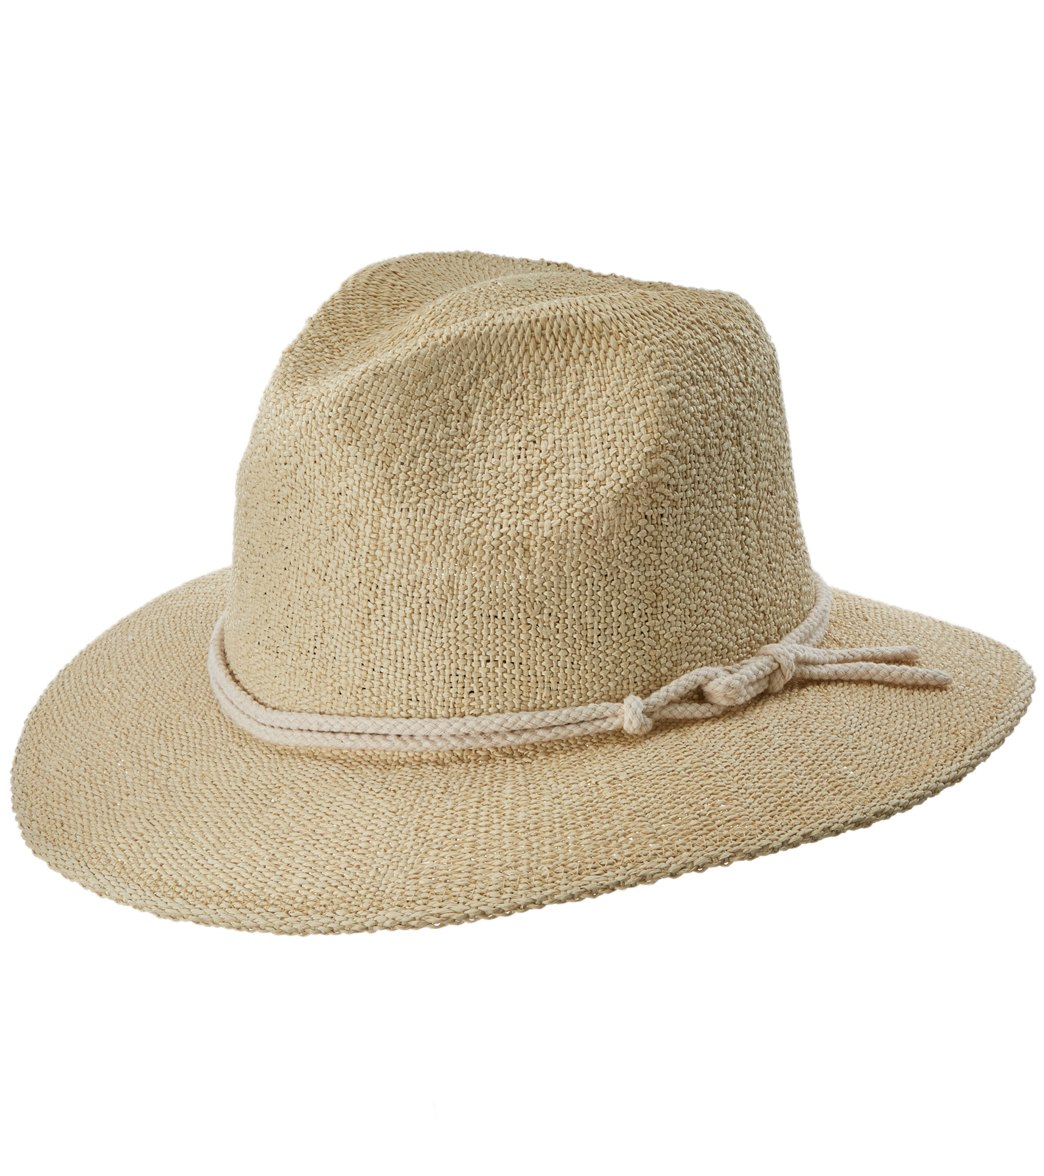 ca992dd83ce4a Peter Grimm Bea Packable Sun Hat at SwimOutlet.com